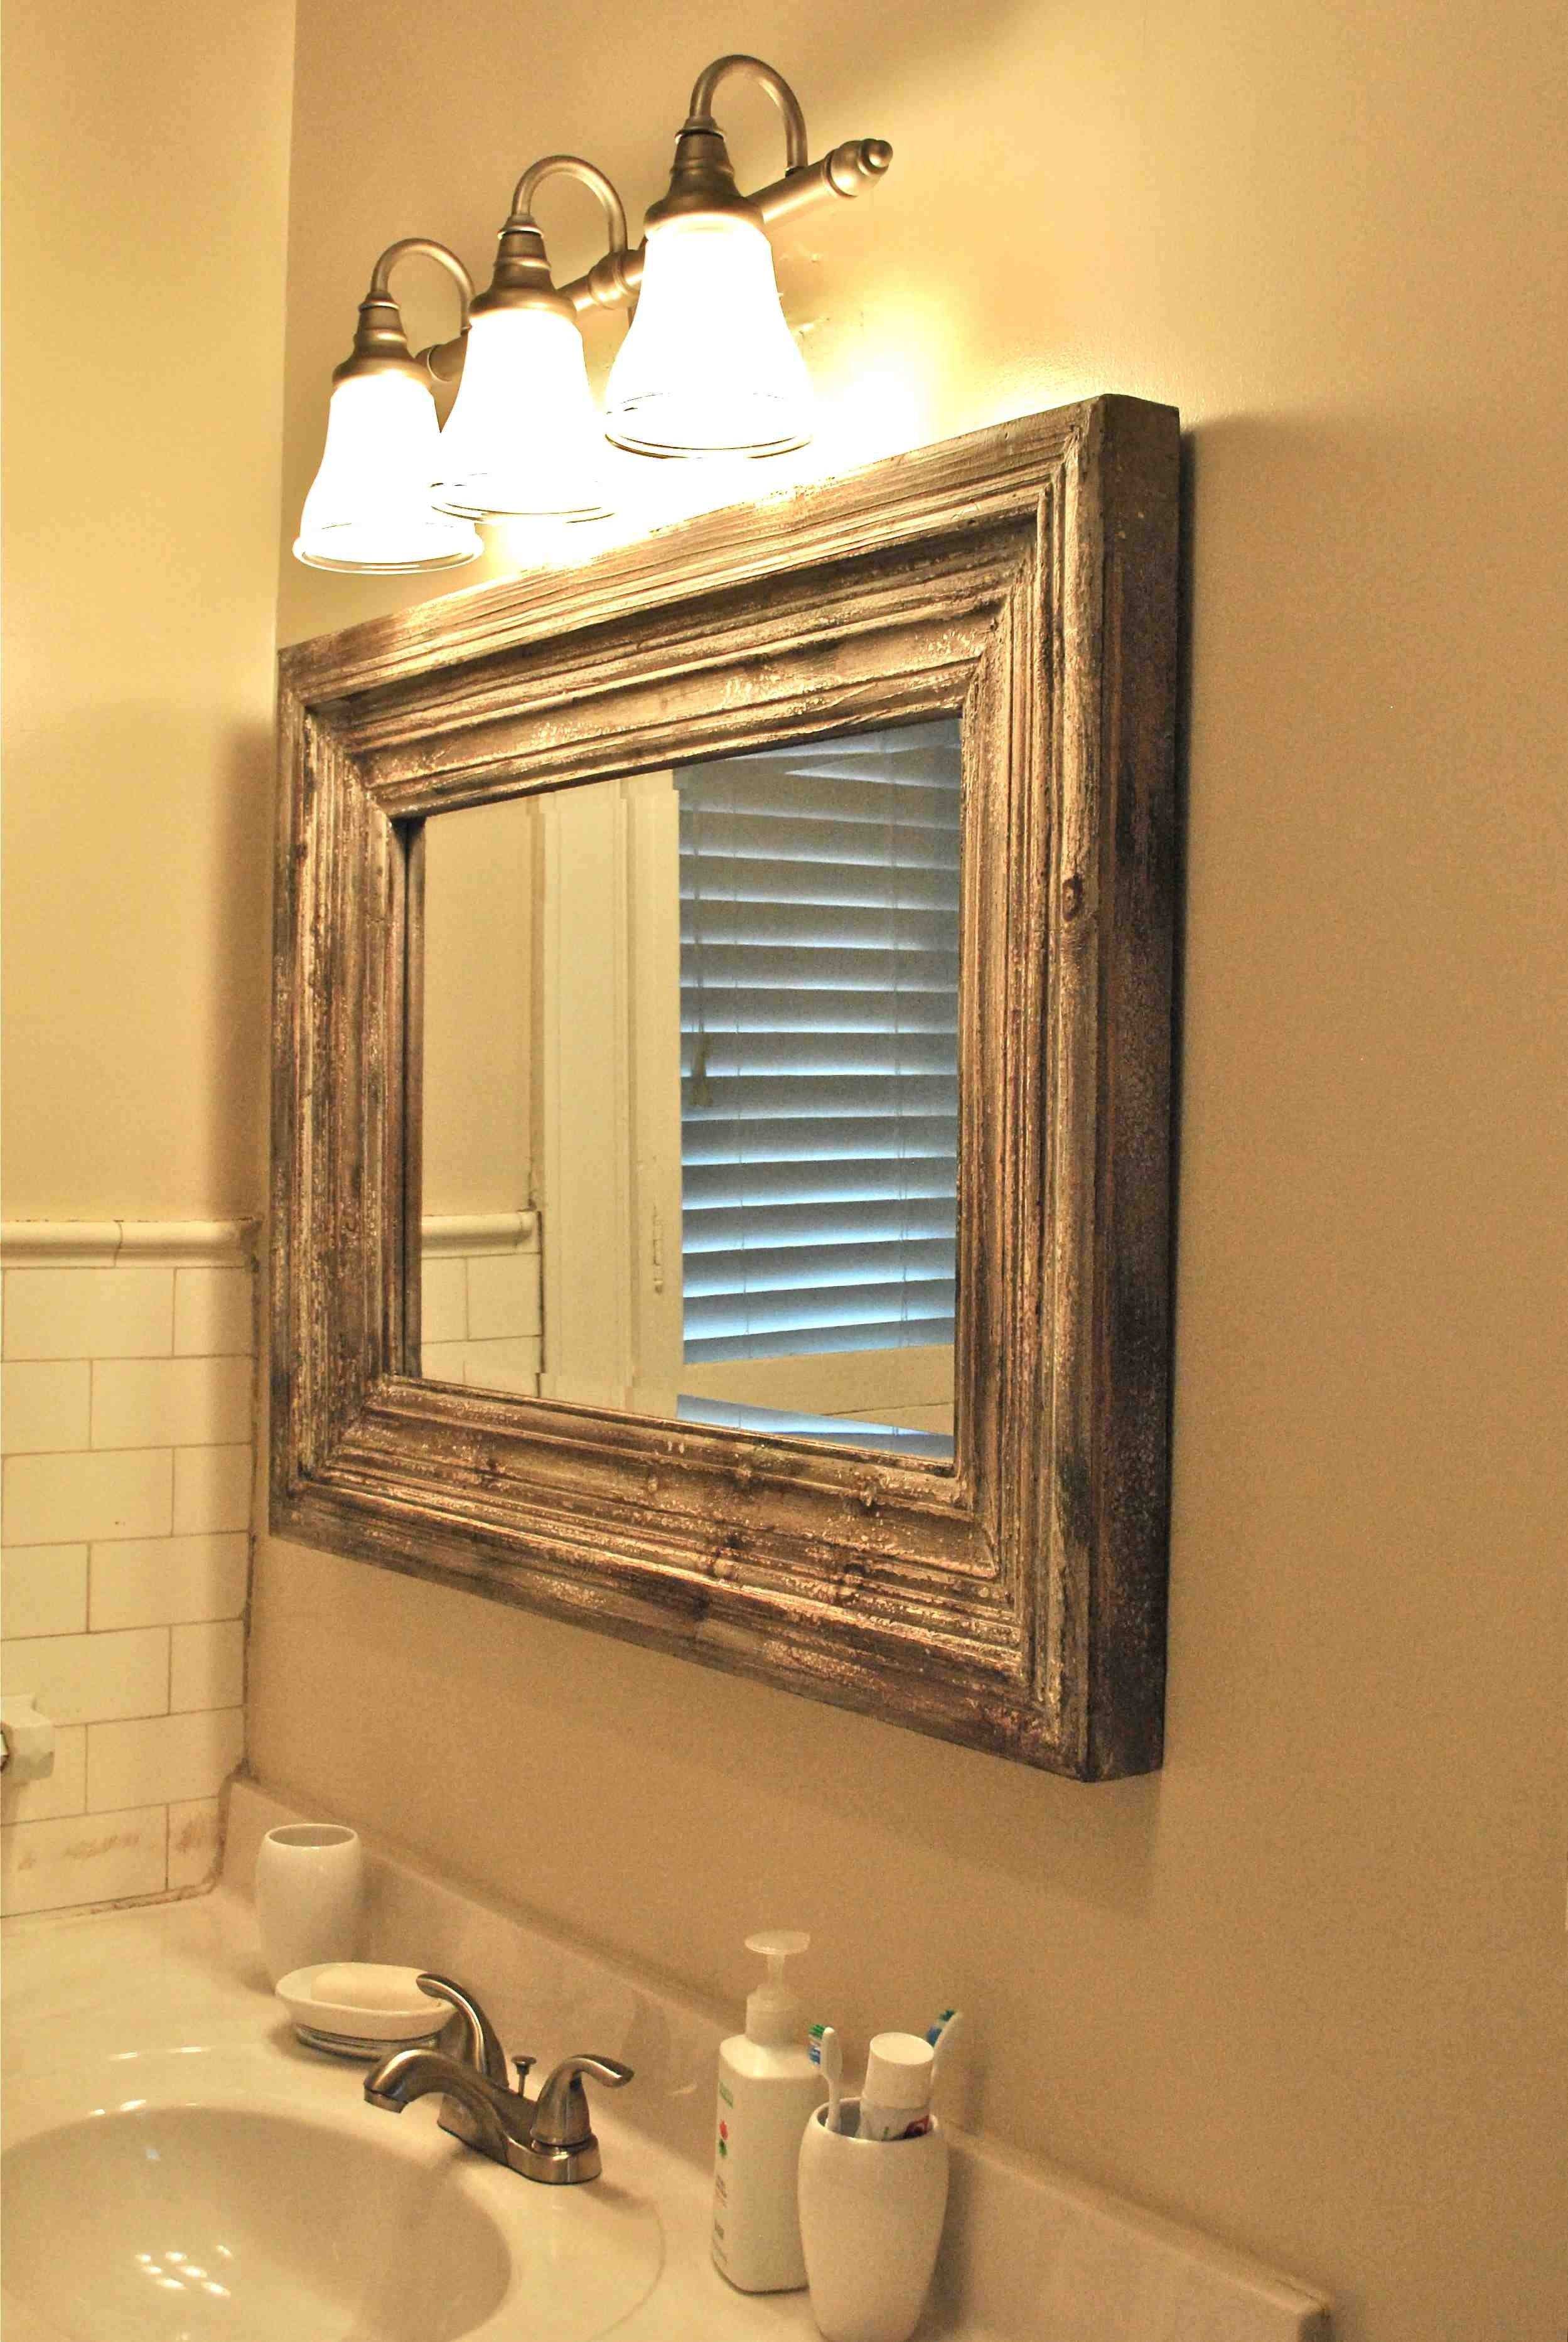 Bathroom Mirrors Lowes Modern Sensational Ideas Bathroom Mirrors and Lighting Lovely with Lowes Décor